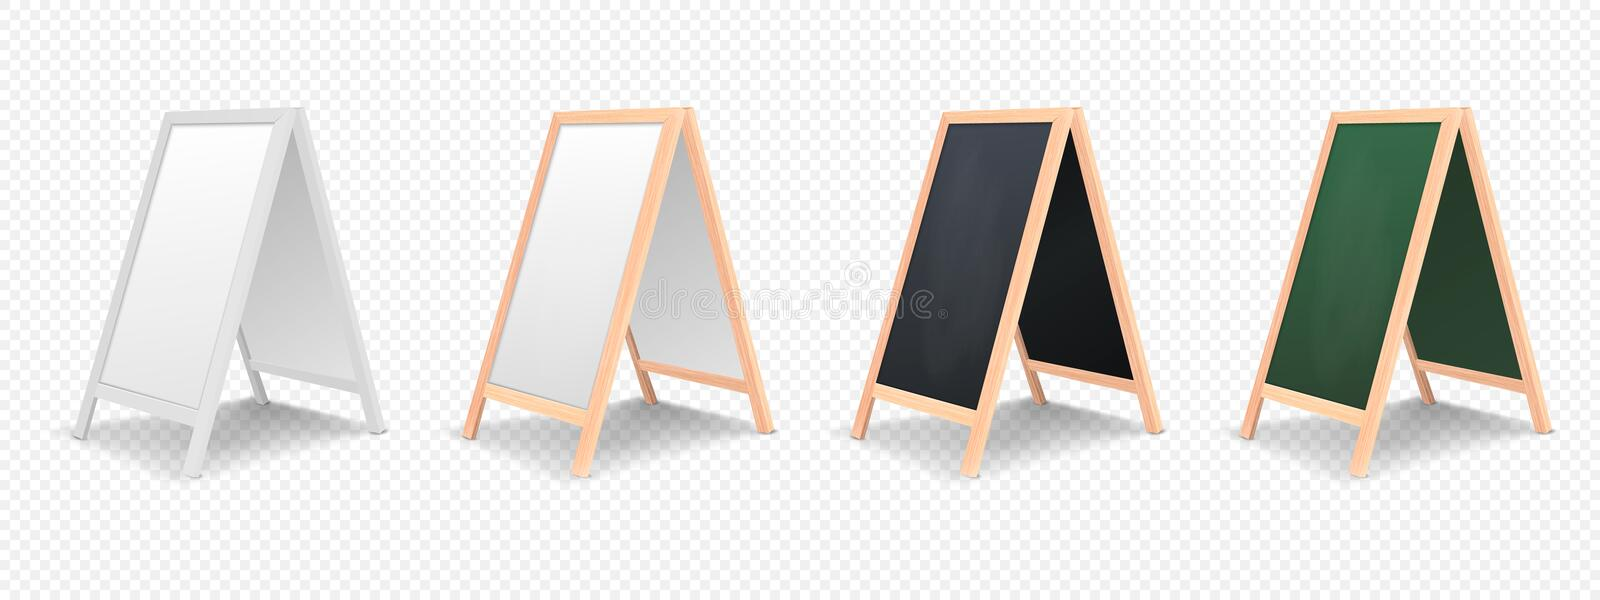 Realistic menu announcement board icon set isolated on transparent background. royalty free illustration